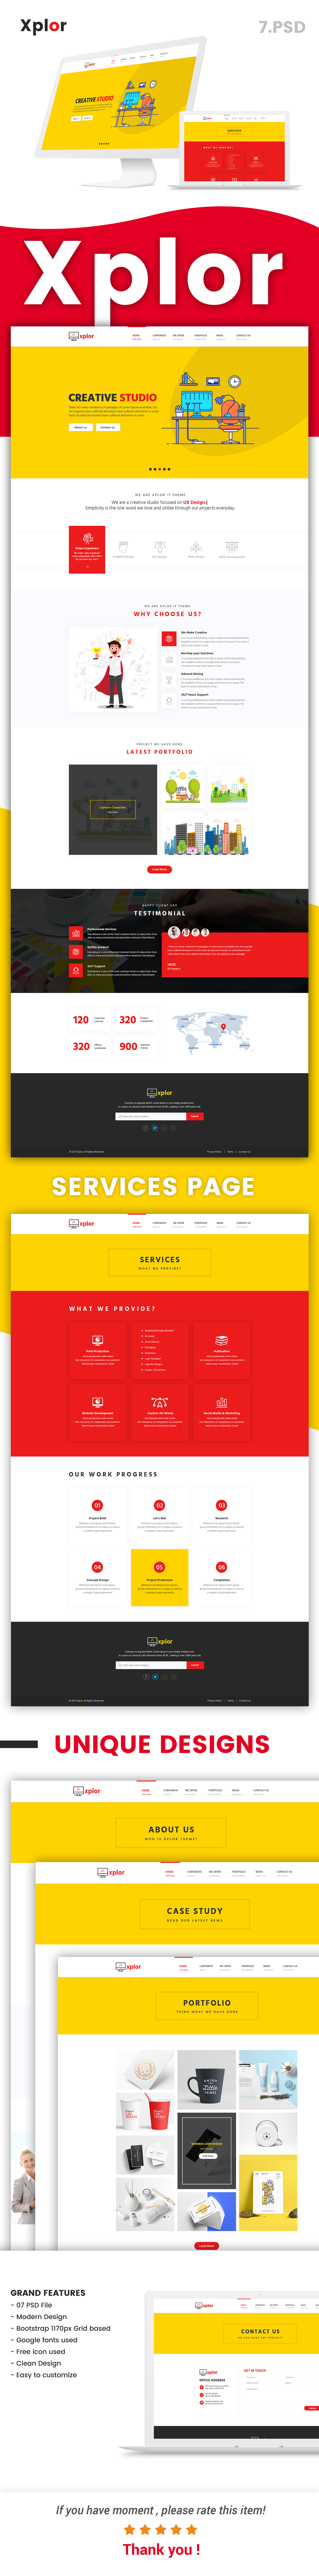 Xplor - Creative Agency PSD Template - 1